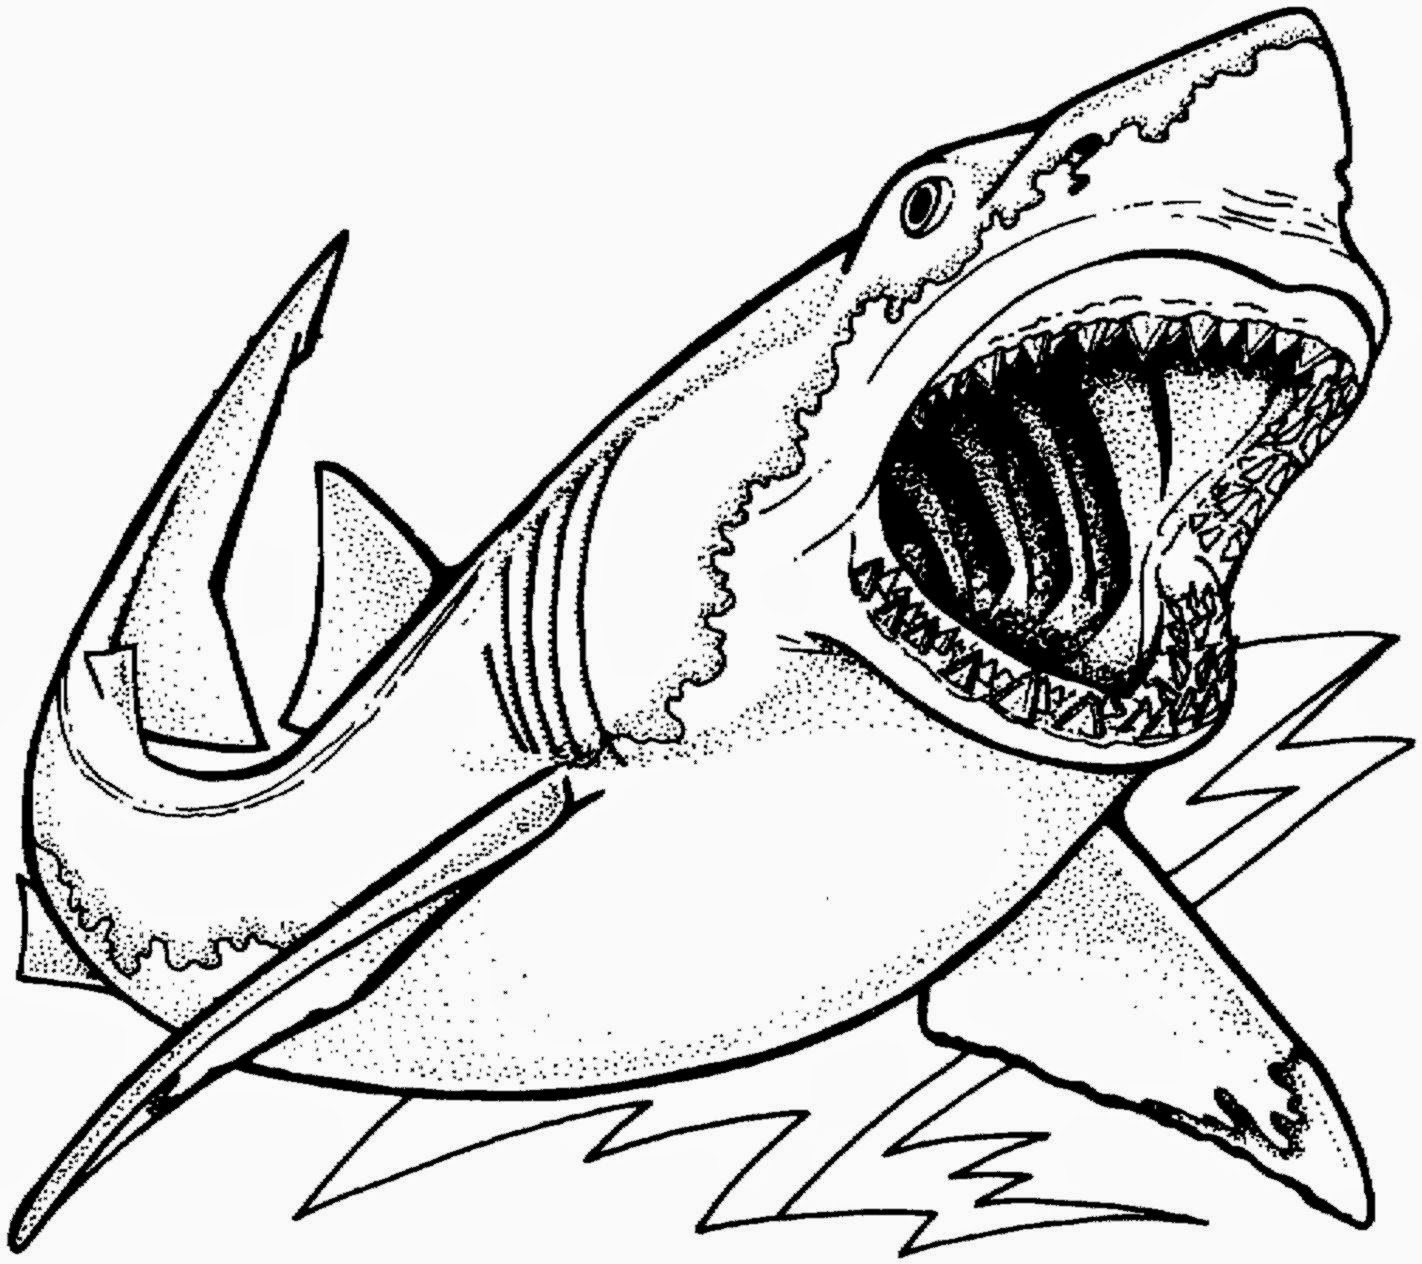 Co co coloring sheets free for kids - Co Coloring Printables Animals Tiger Shark Coloring Page Coloring Pages Sharks Coloring Pages Printable